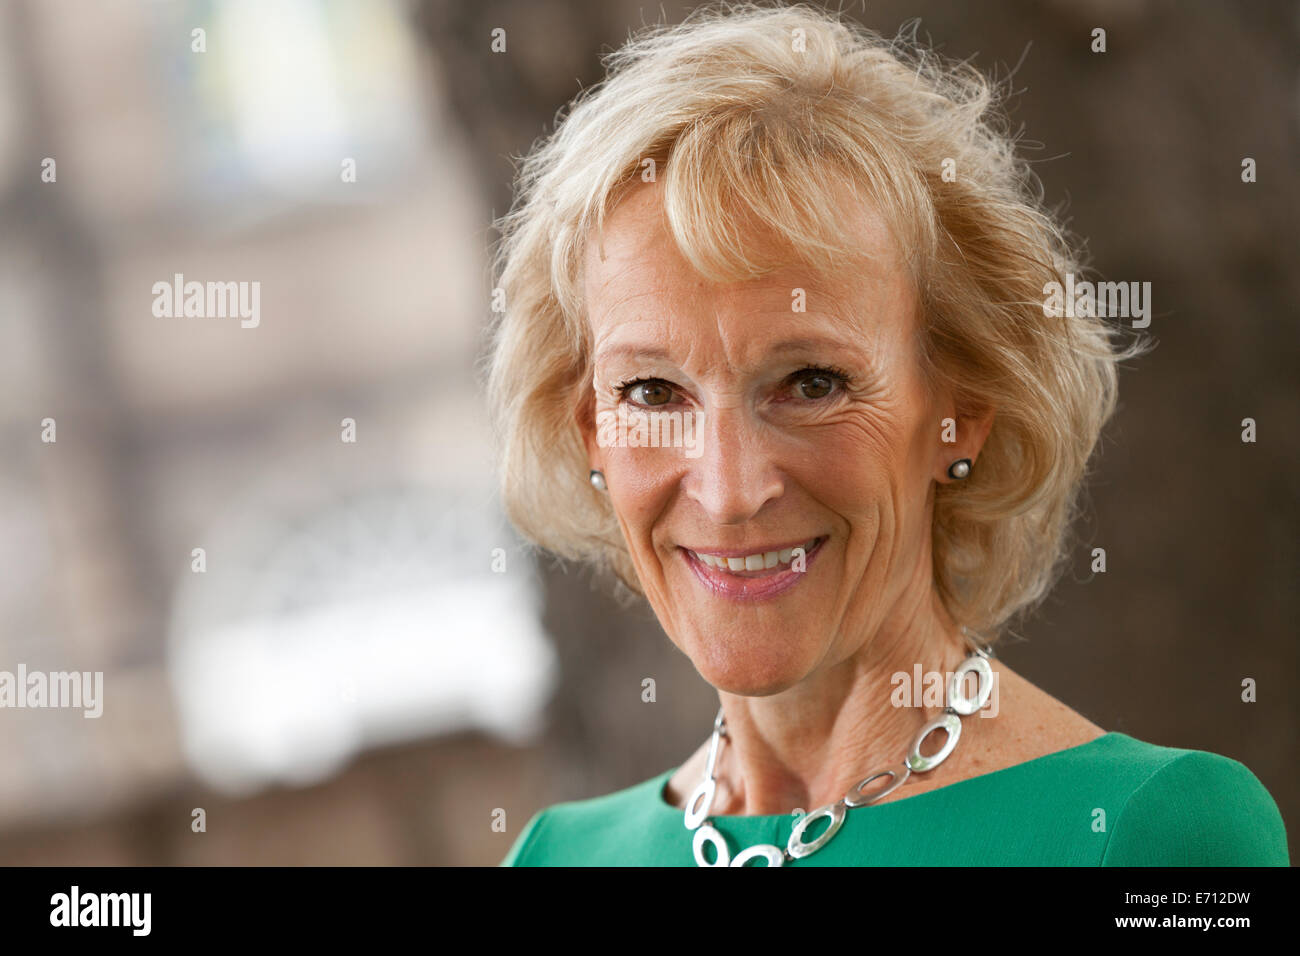 Sue Lawrence, the  Scottish cookery and food writer, appearing at the Edinburgh International Book Festival, 2014. - Stock Image